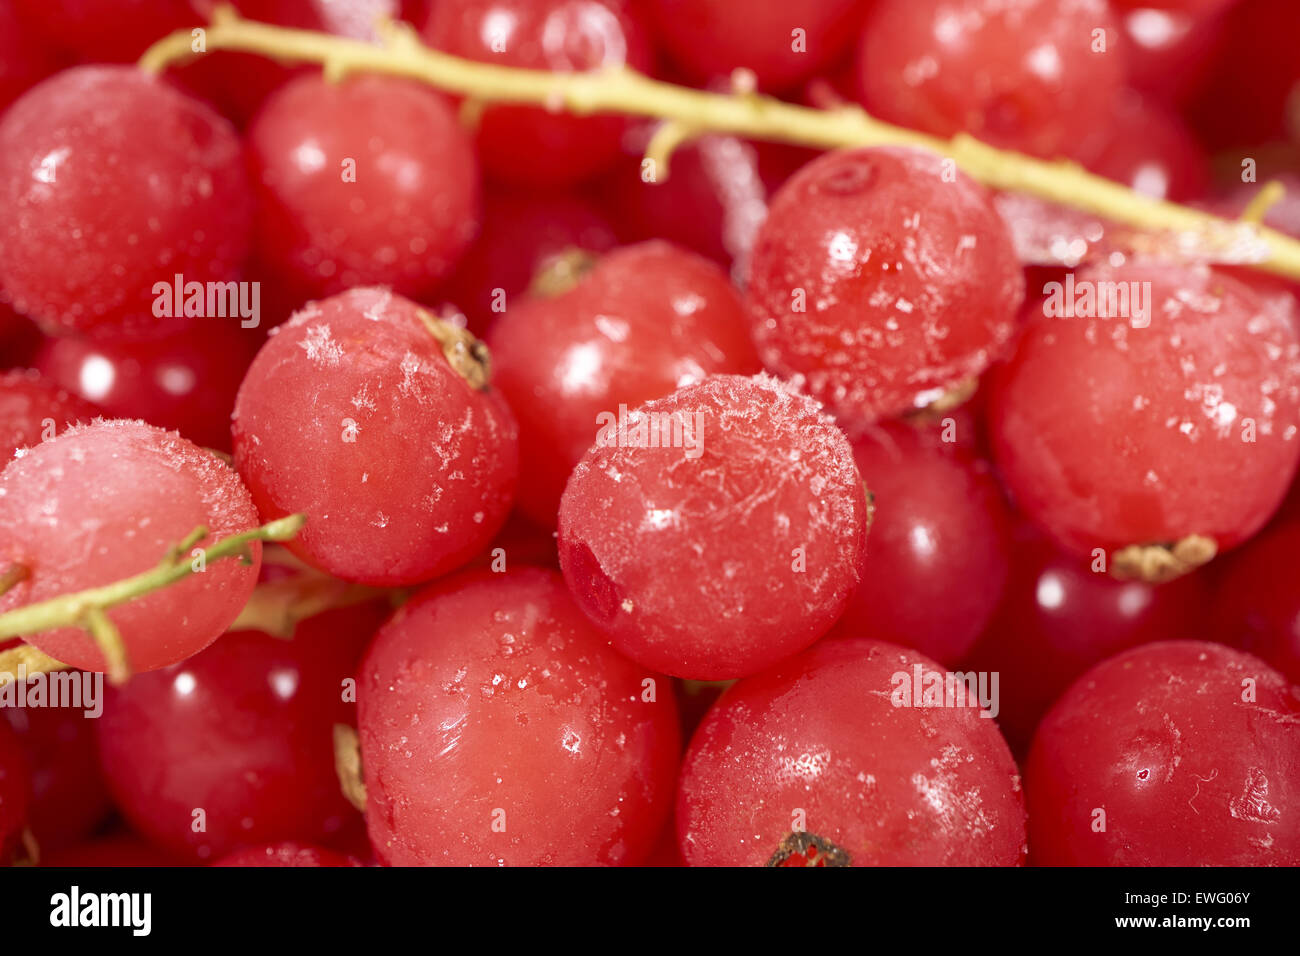 Background from many frozen currants covered with ice crystals - Stock Image